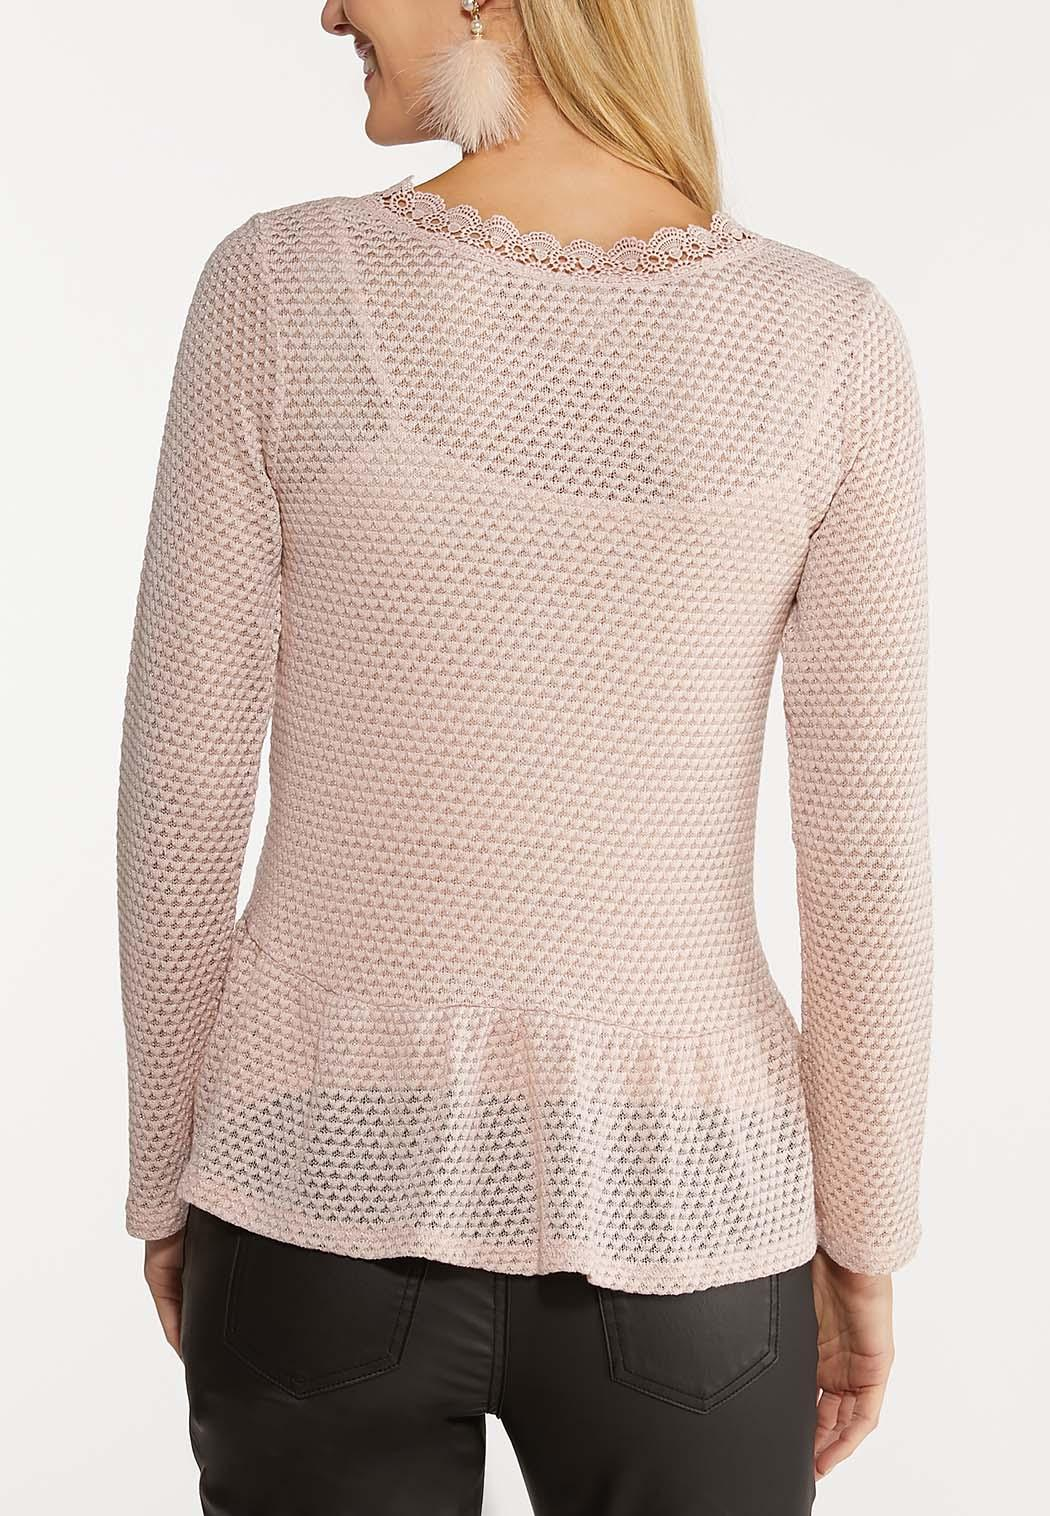 Pink Ruffled Lace Trim Top (Item #44089179)